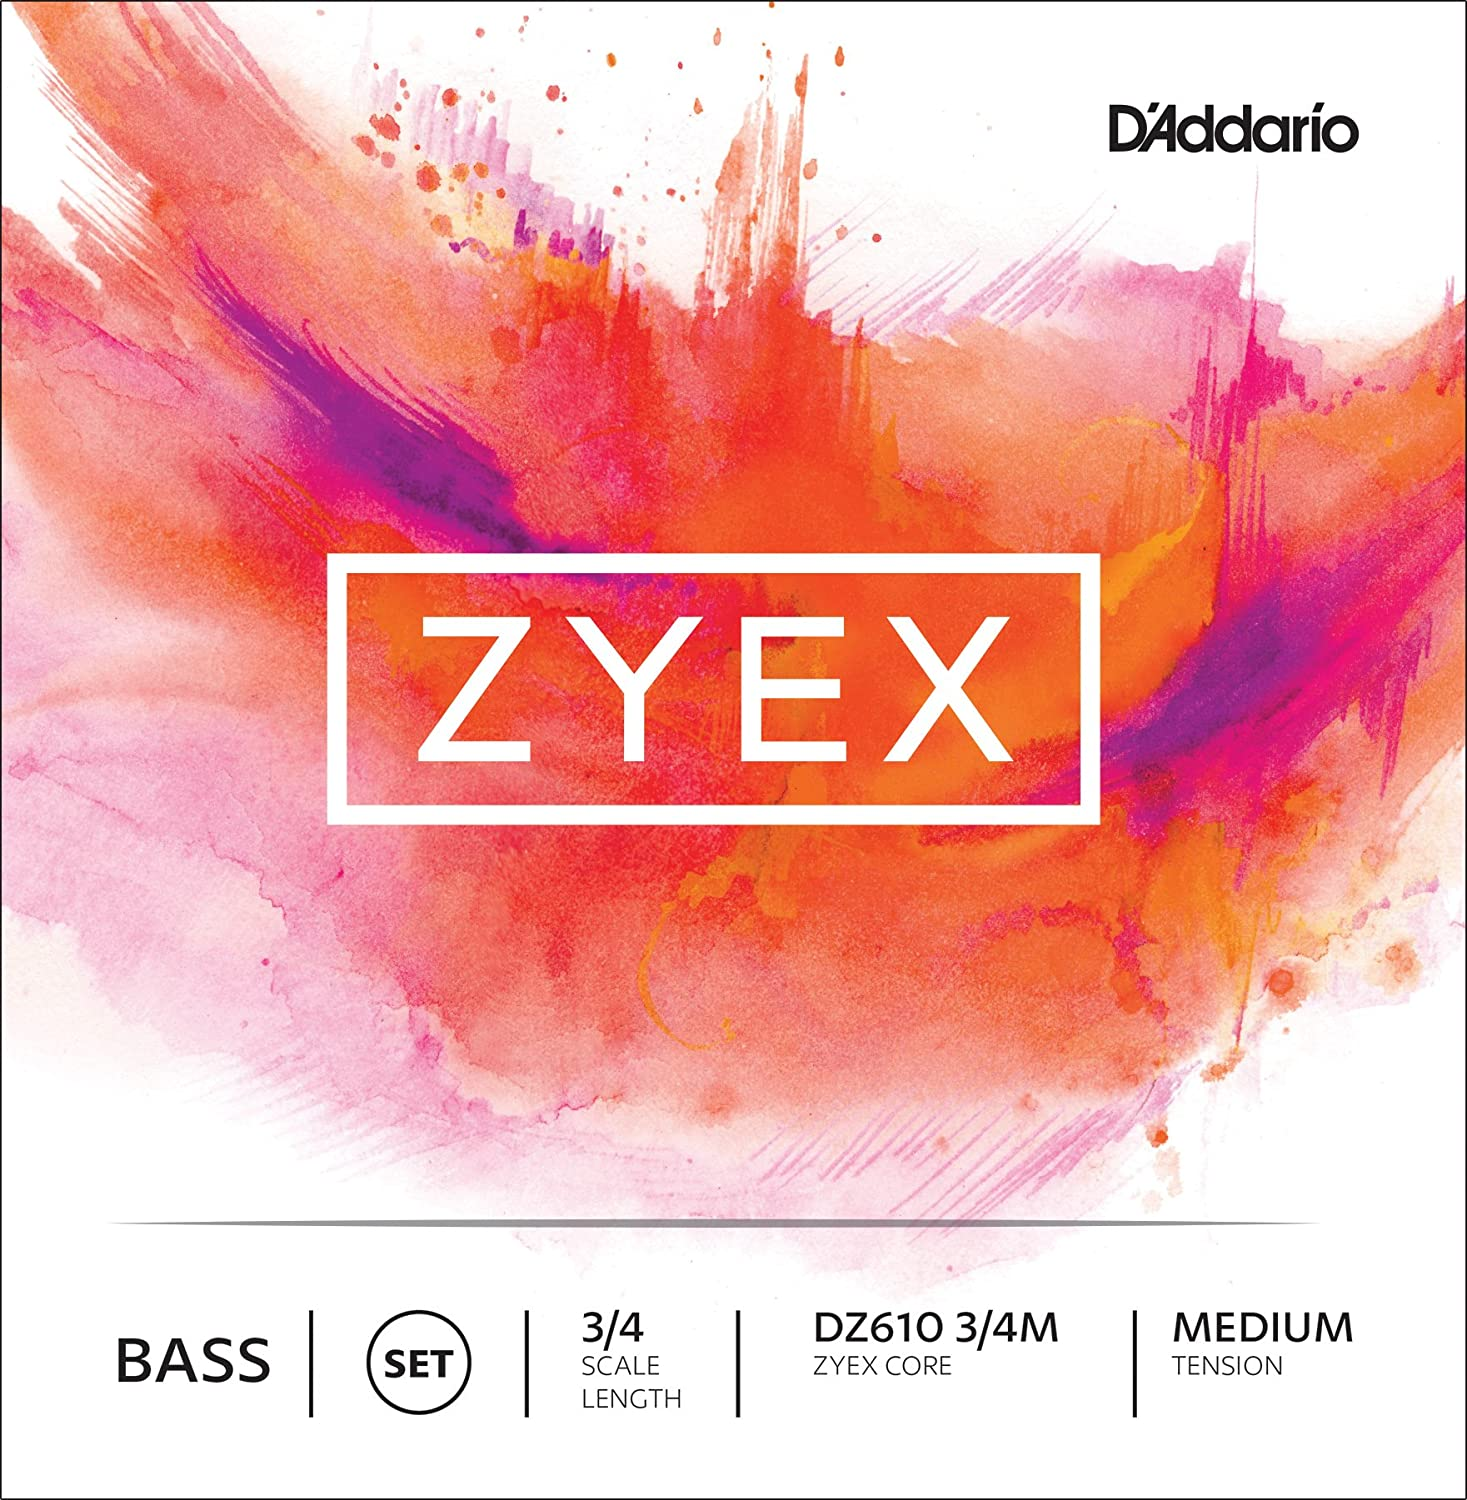 D'Addario Zyex Bass String Set, 3/4 Scale, Medium Tension - DZ610-3/4M D' Addario DZ610 3/4M